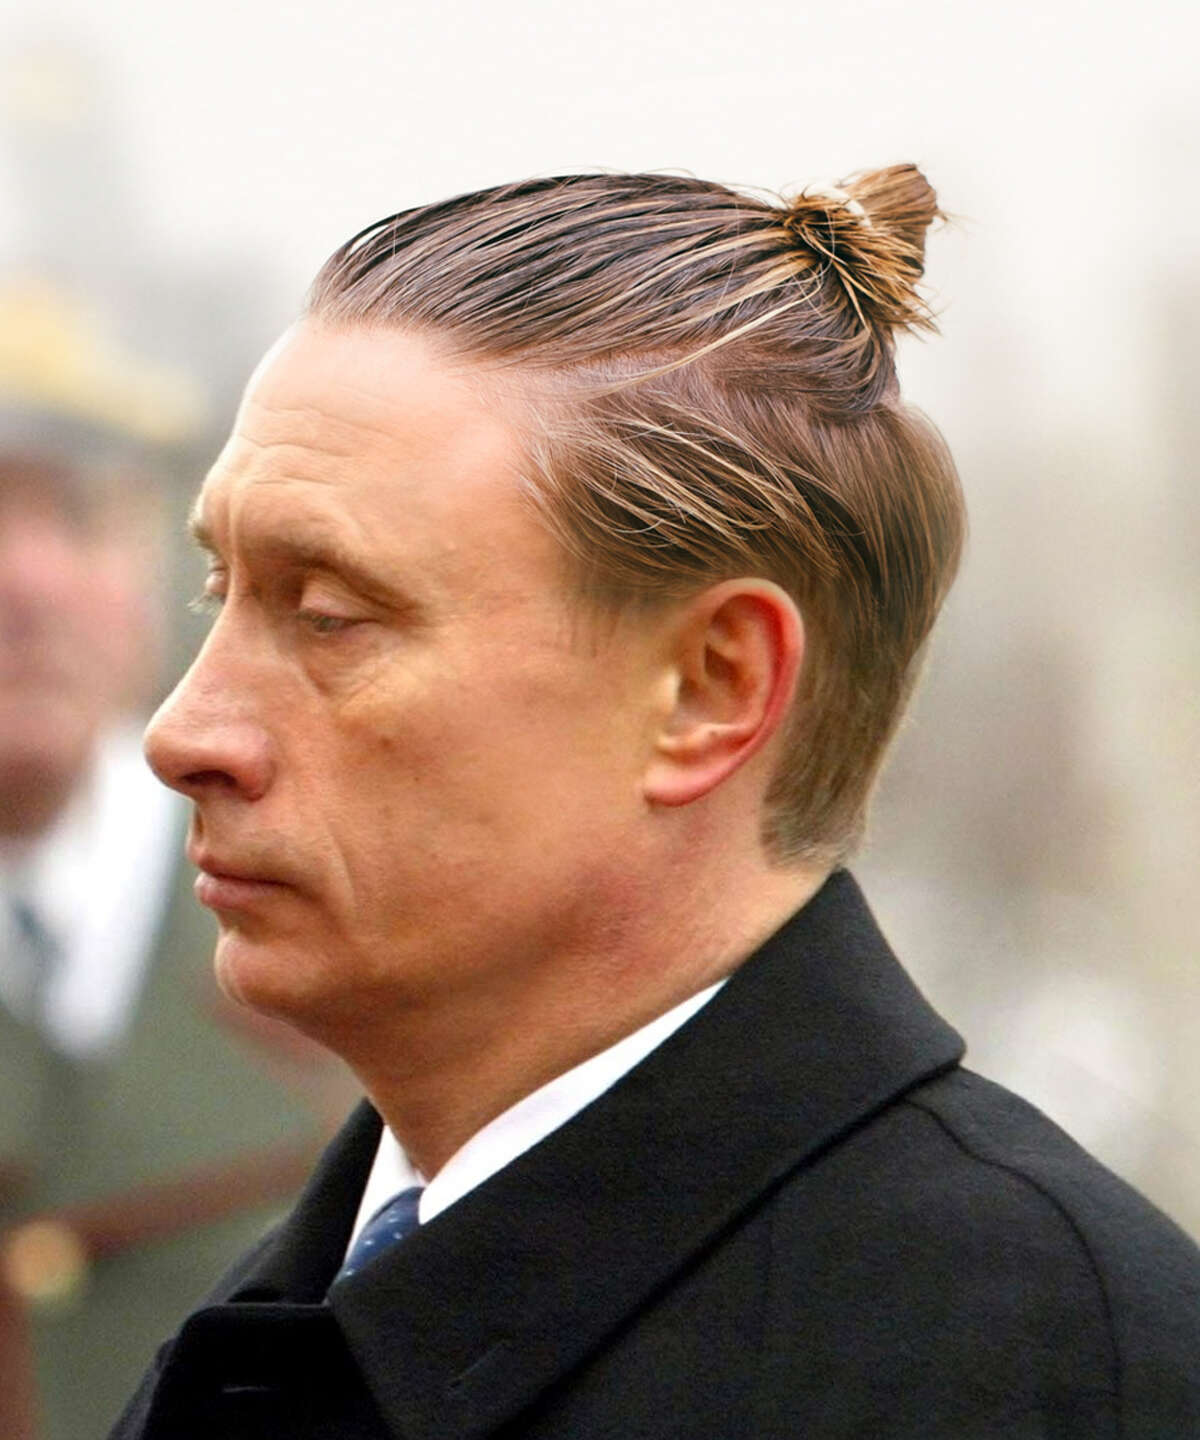 The winning man bun - Vladimir Putin.